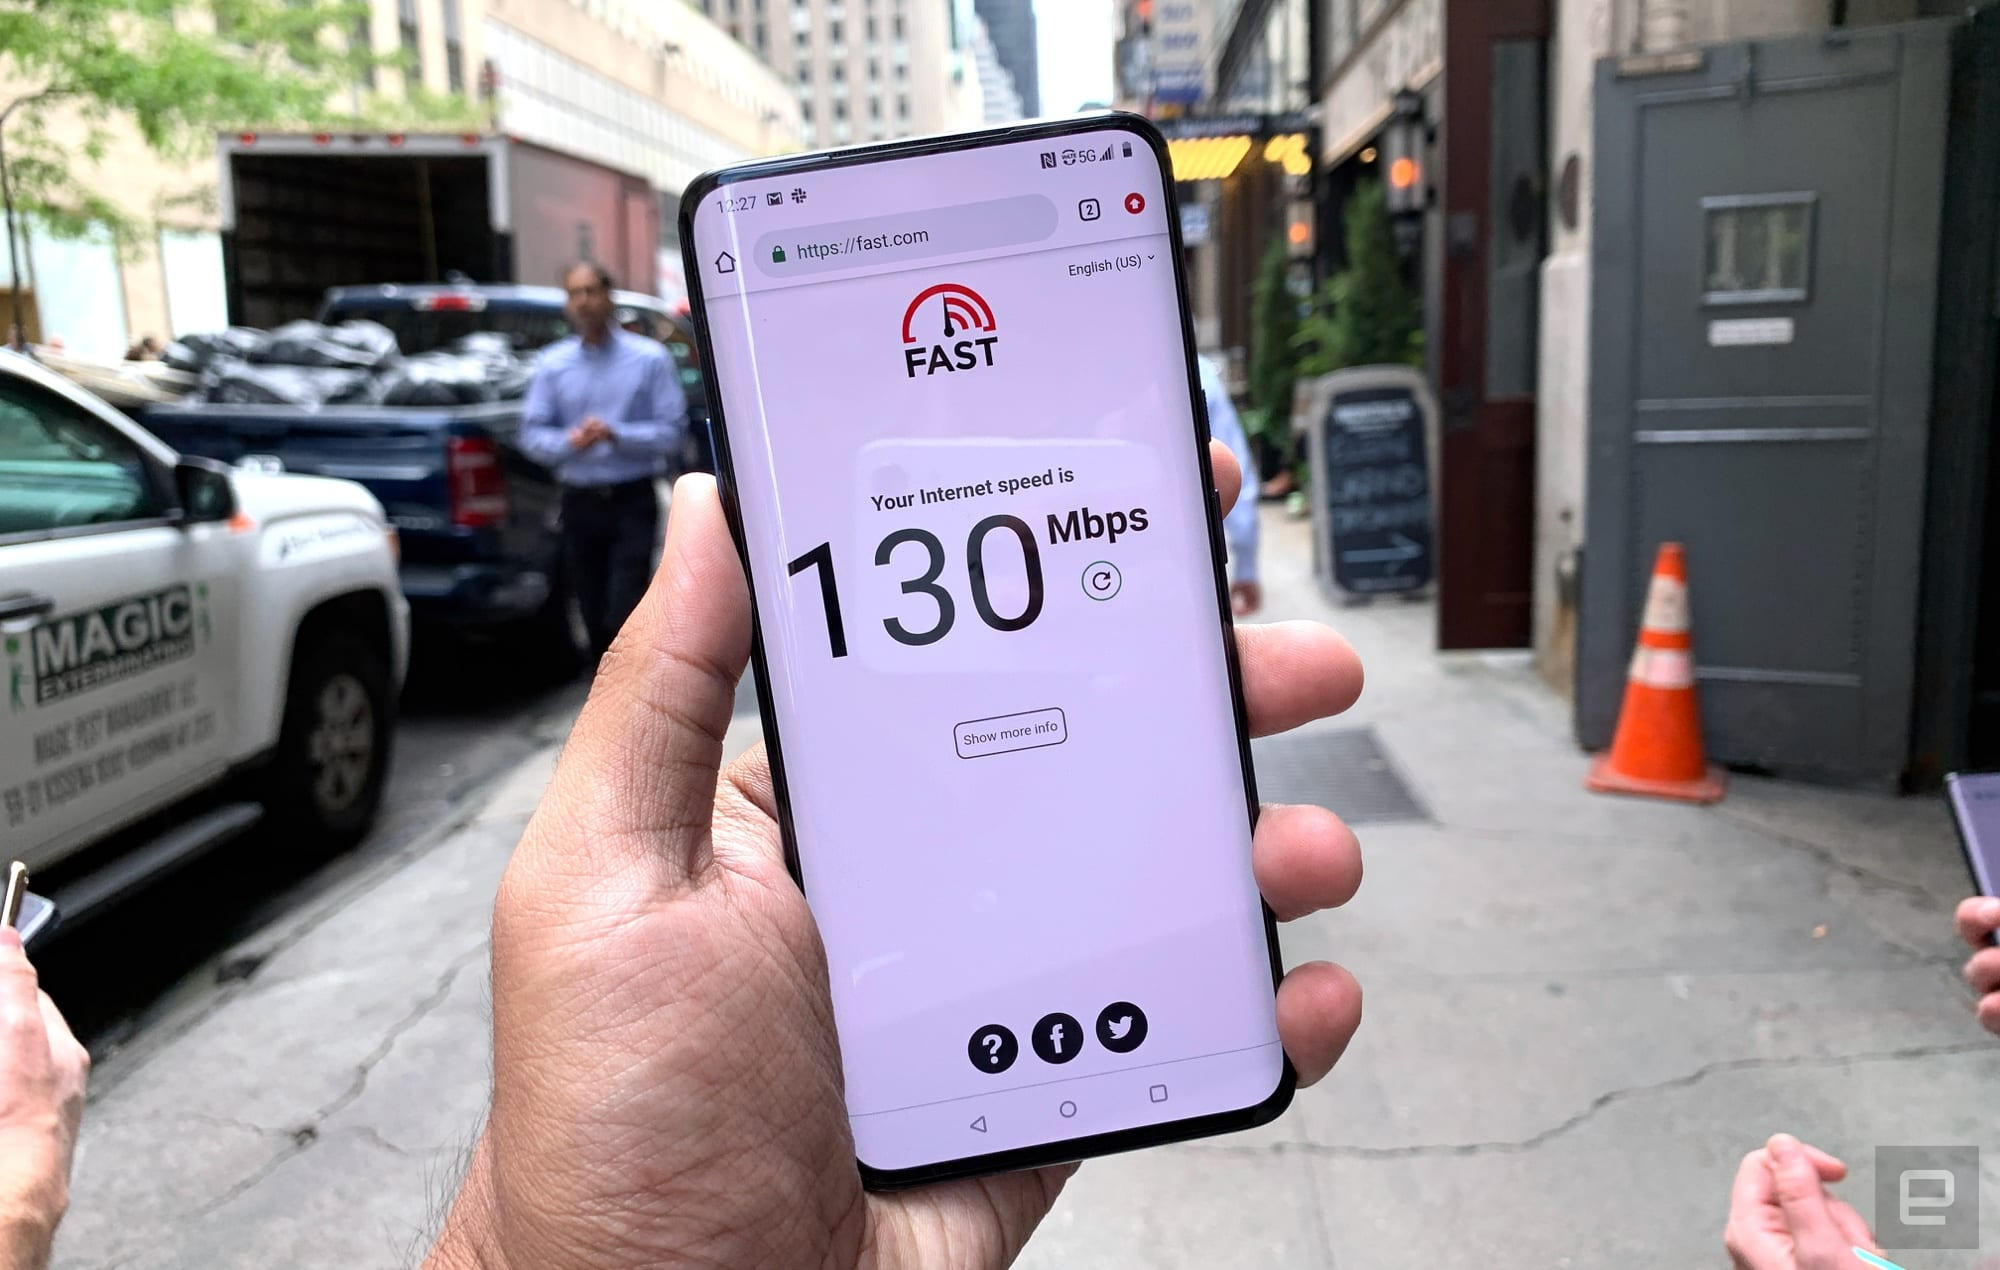 Sprint's 5G network in NYC isn't crazy fast, but it's fast enough